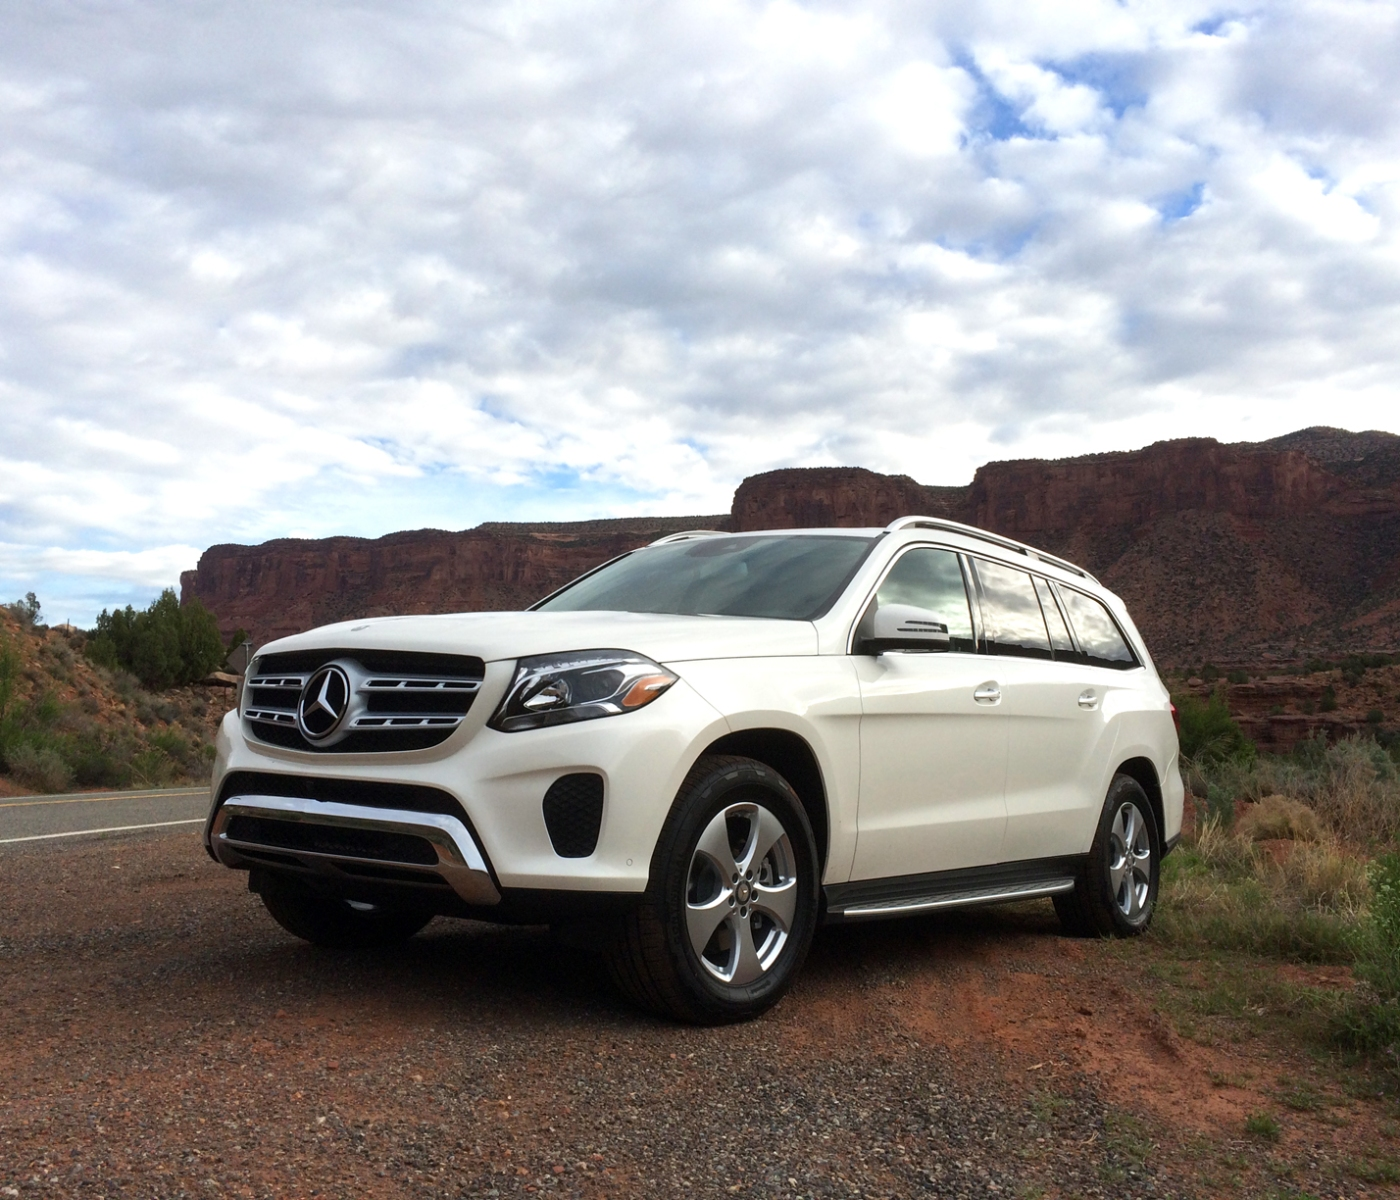 2017 mercedes benz gls class test drive and review the. Black Bedroom Furniture Sets. Home Design Ideas